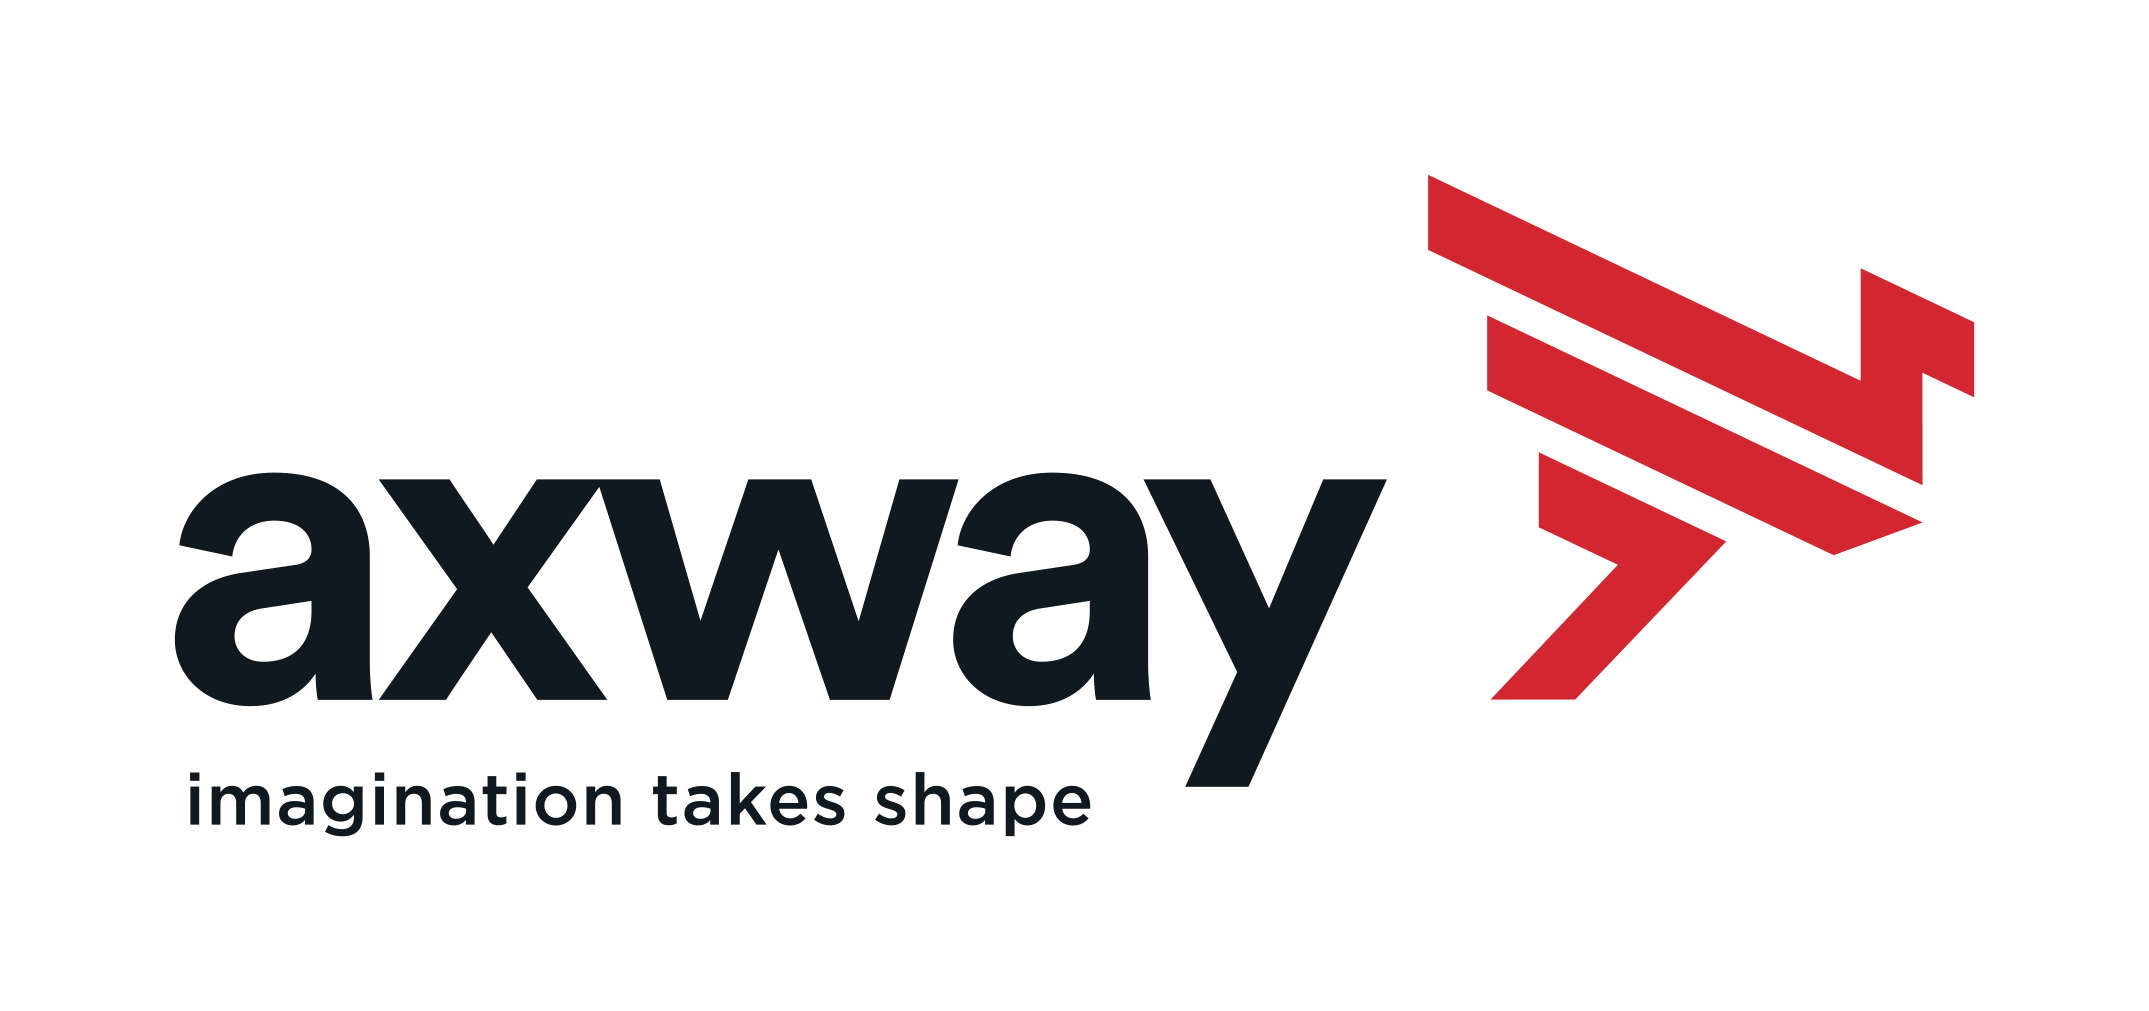 Tech a way | Axway Picture